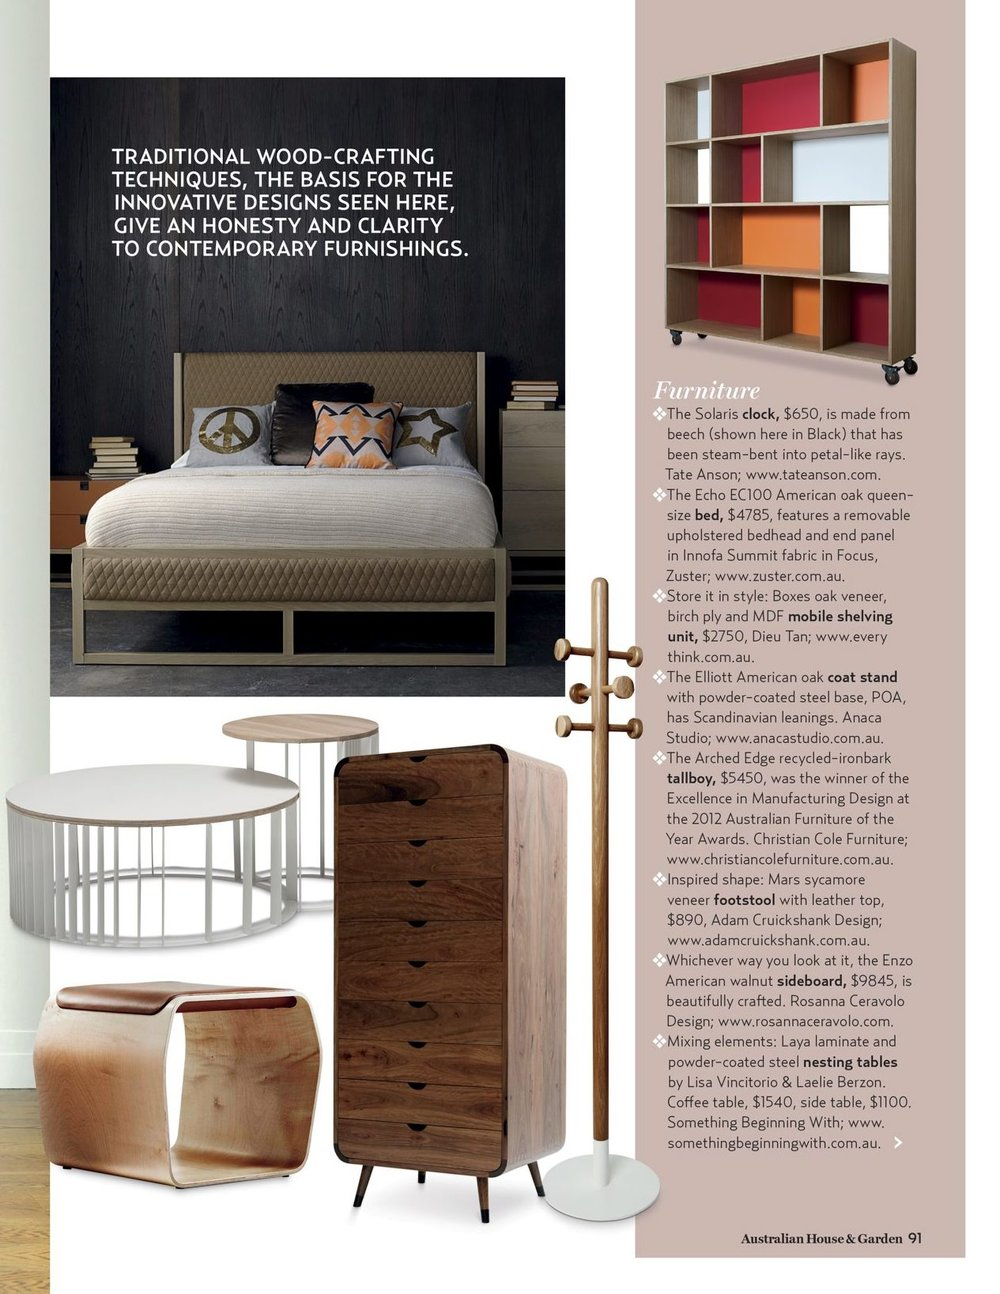 Dec 2012 issue - House&Garden - Elliot coat stand -  Selected as part of H&G Style Awards 2012 in the Furniture section.